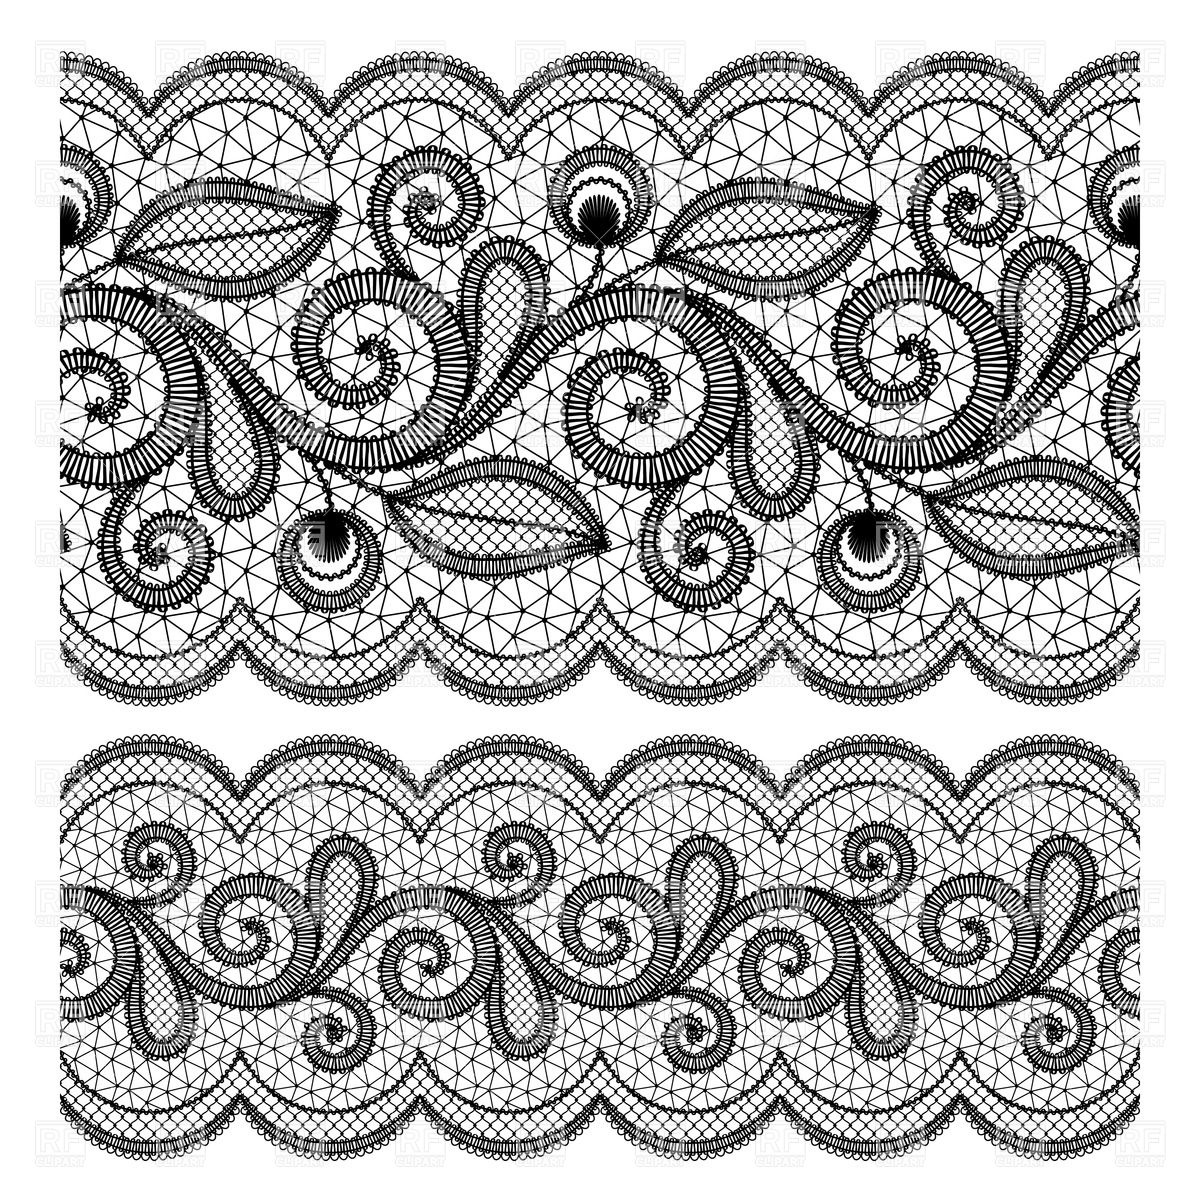 13 Lace Border Vector Images